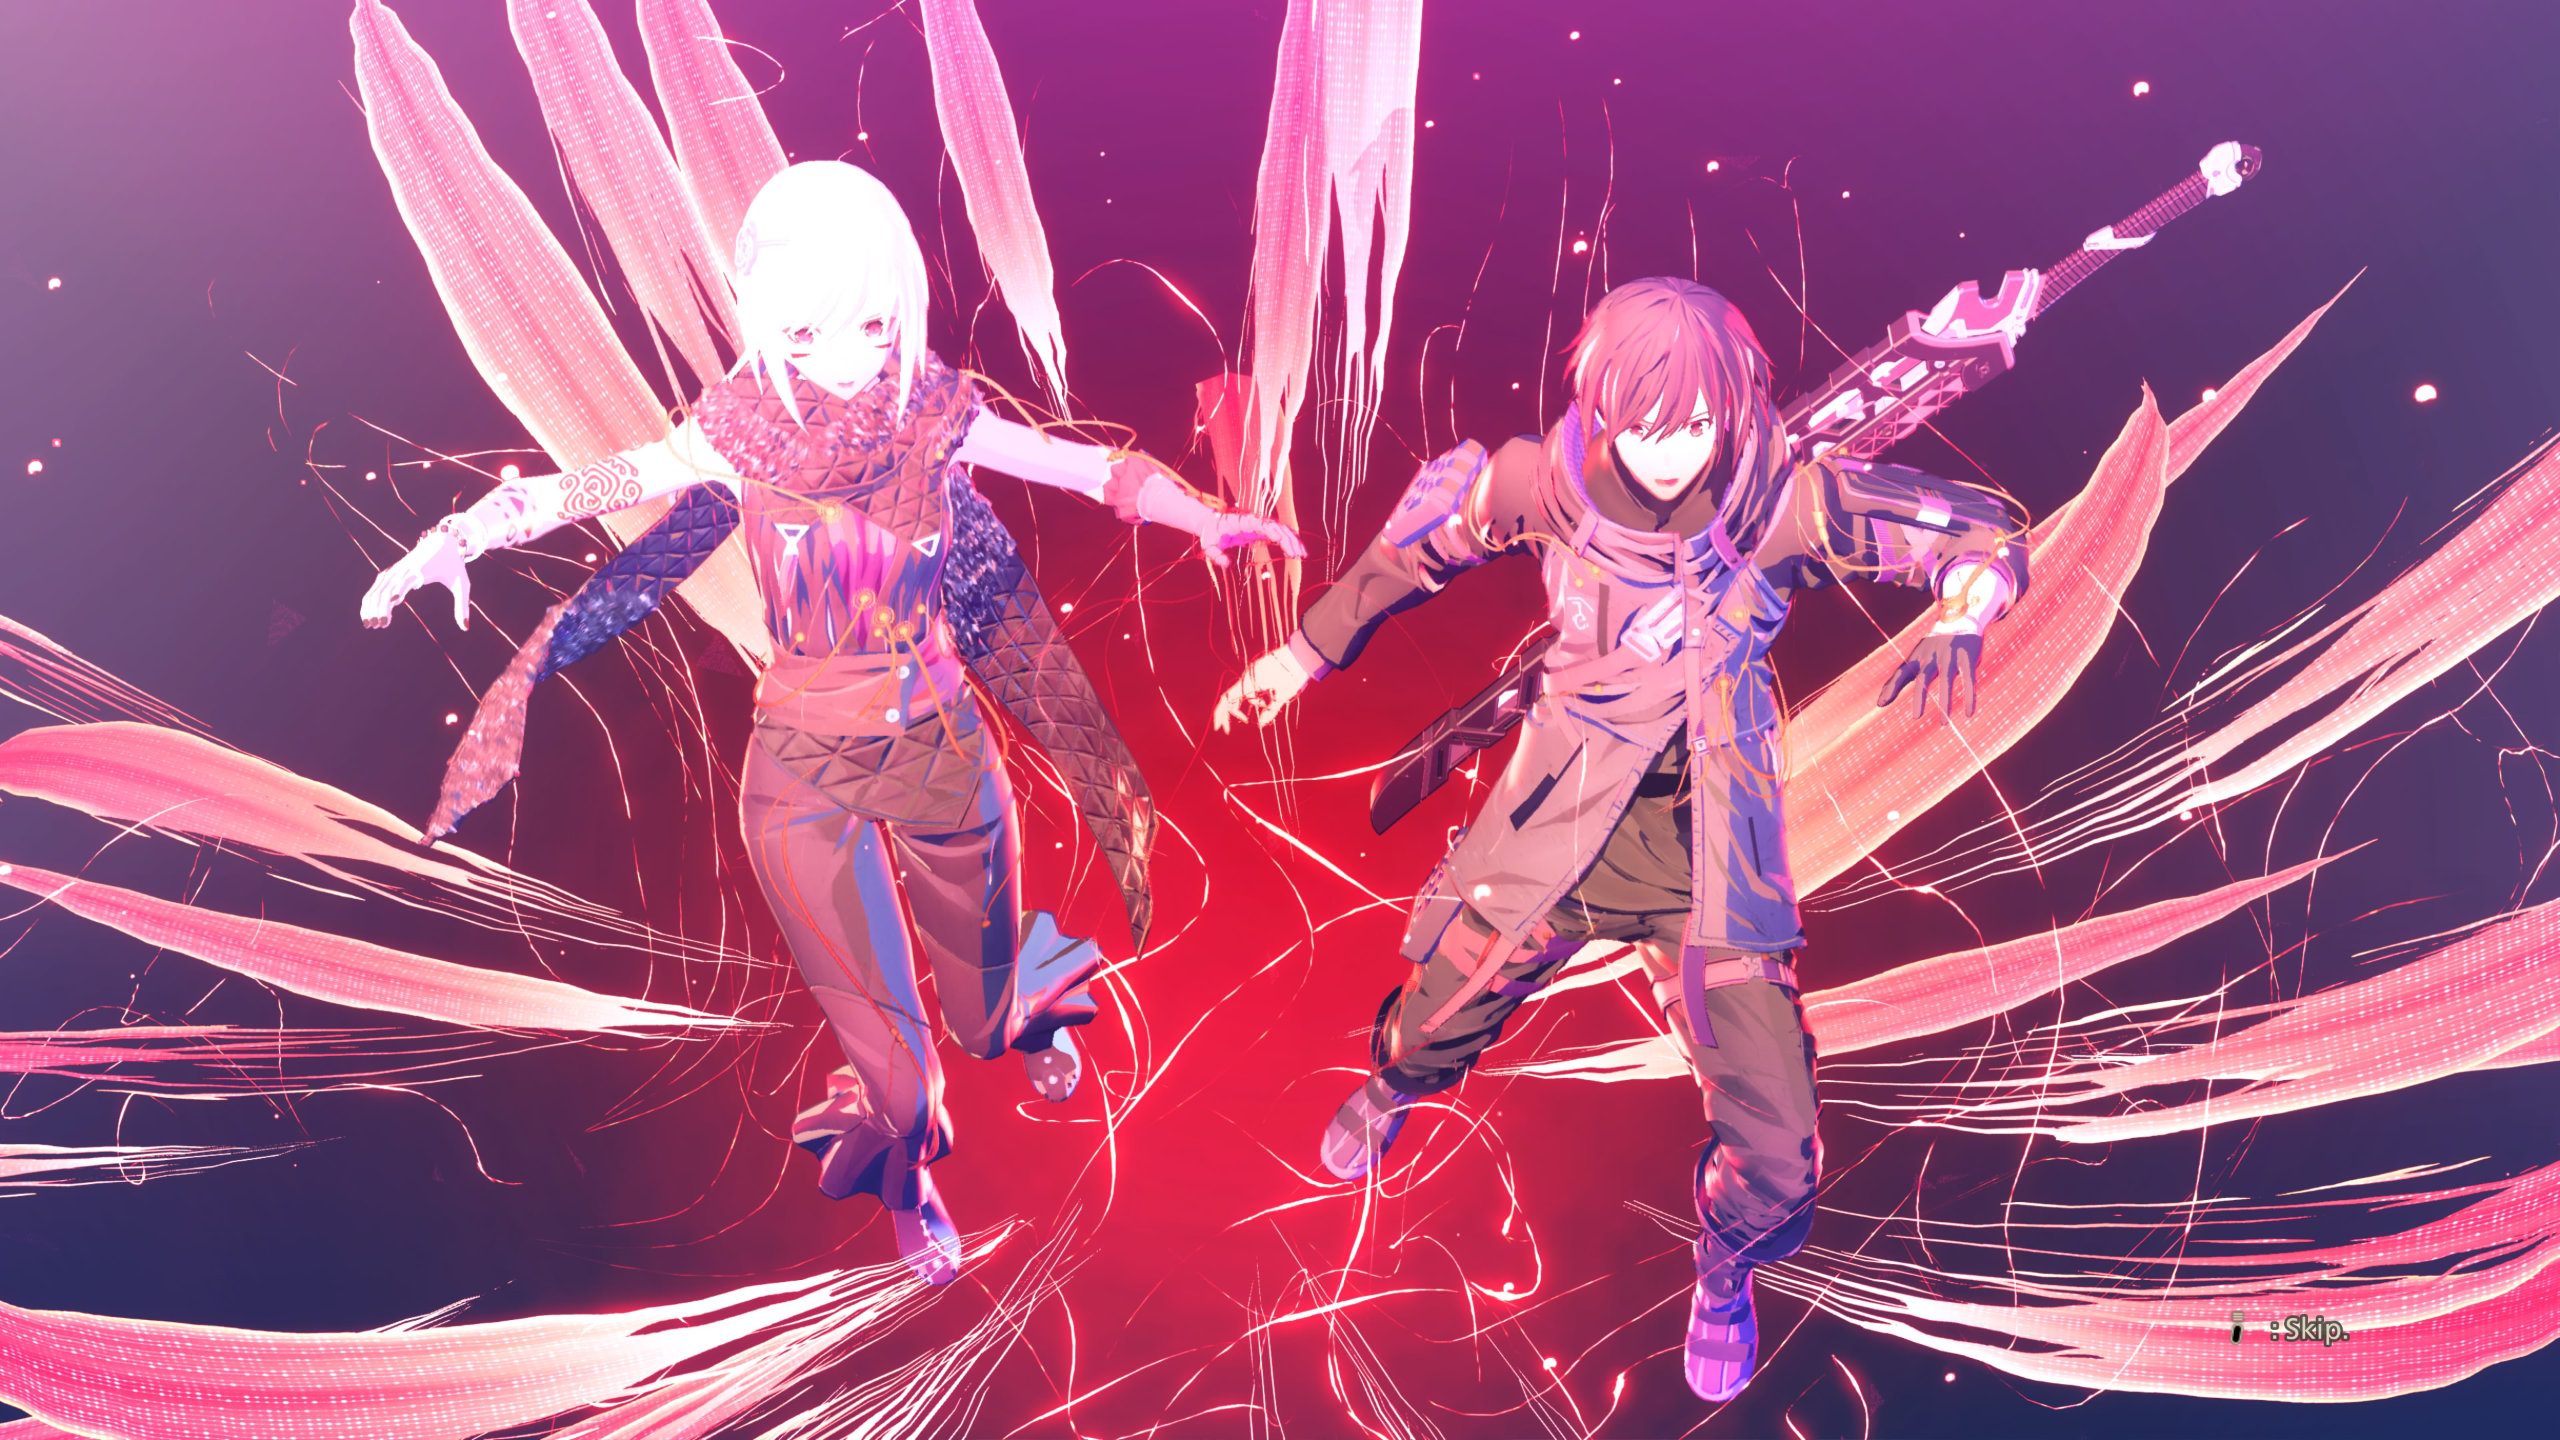 Scarlet Nexus screenshot of a young woman and a young man, surrounded by red strands, falling into a red void.